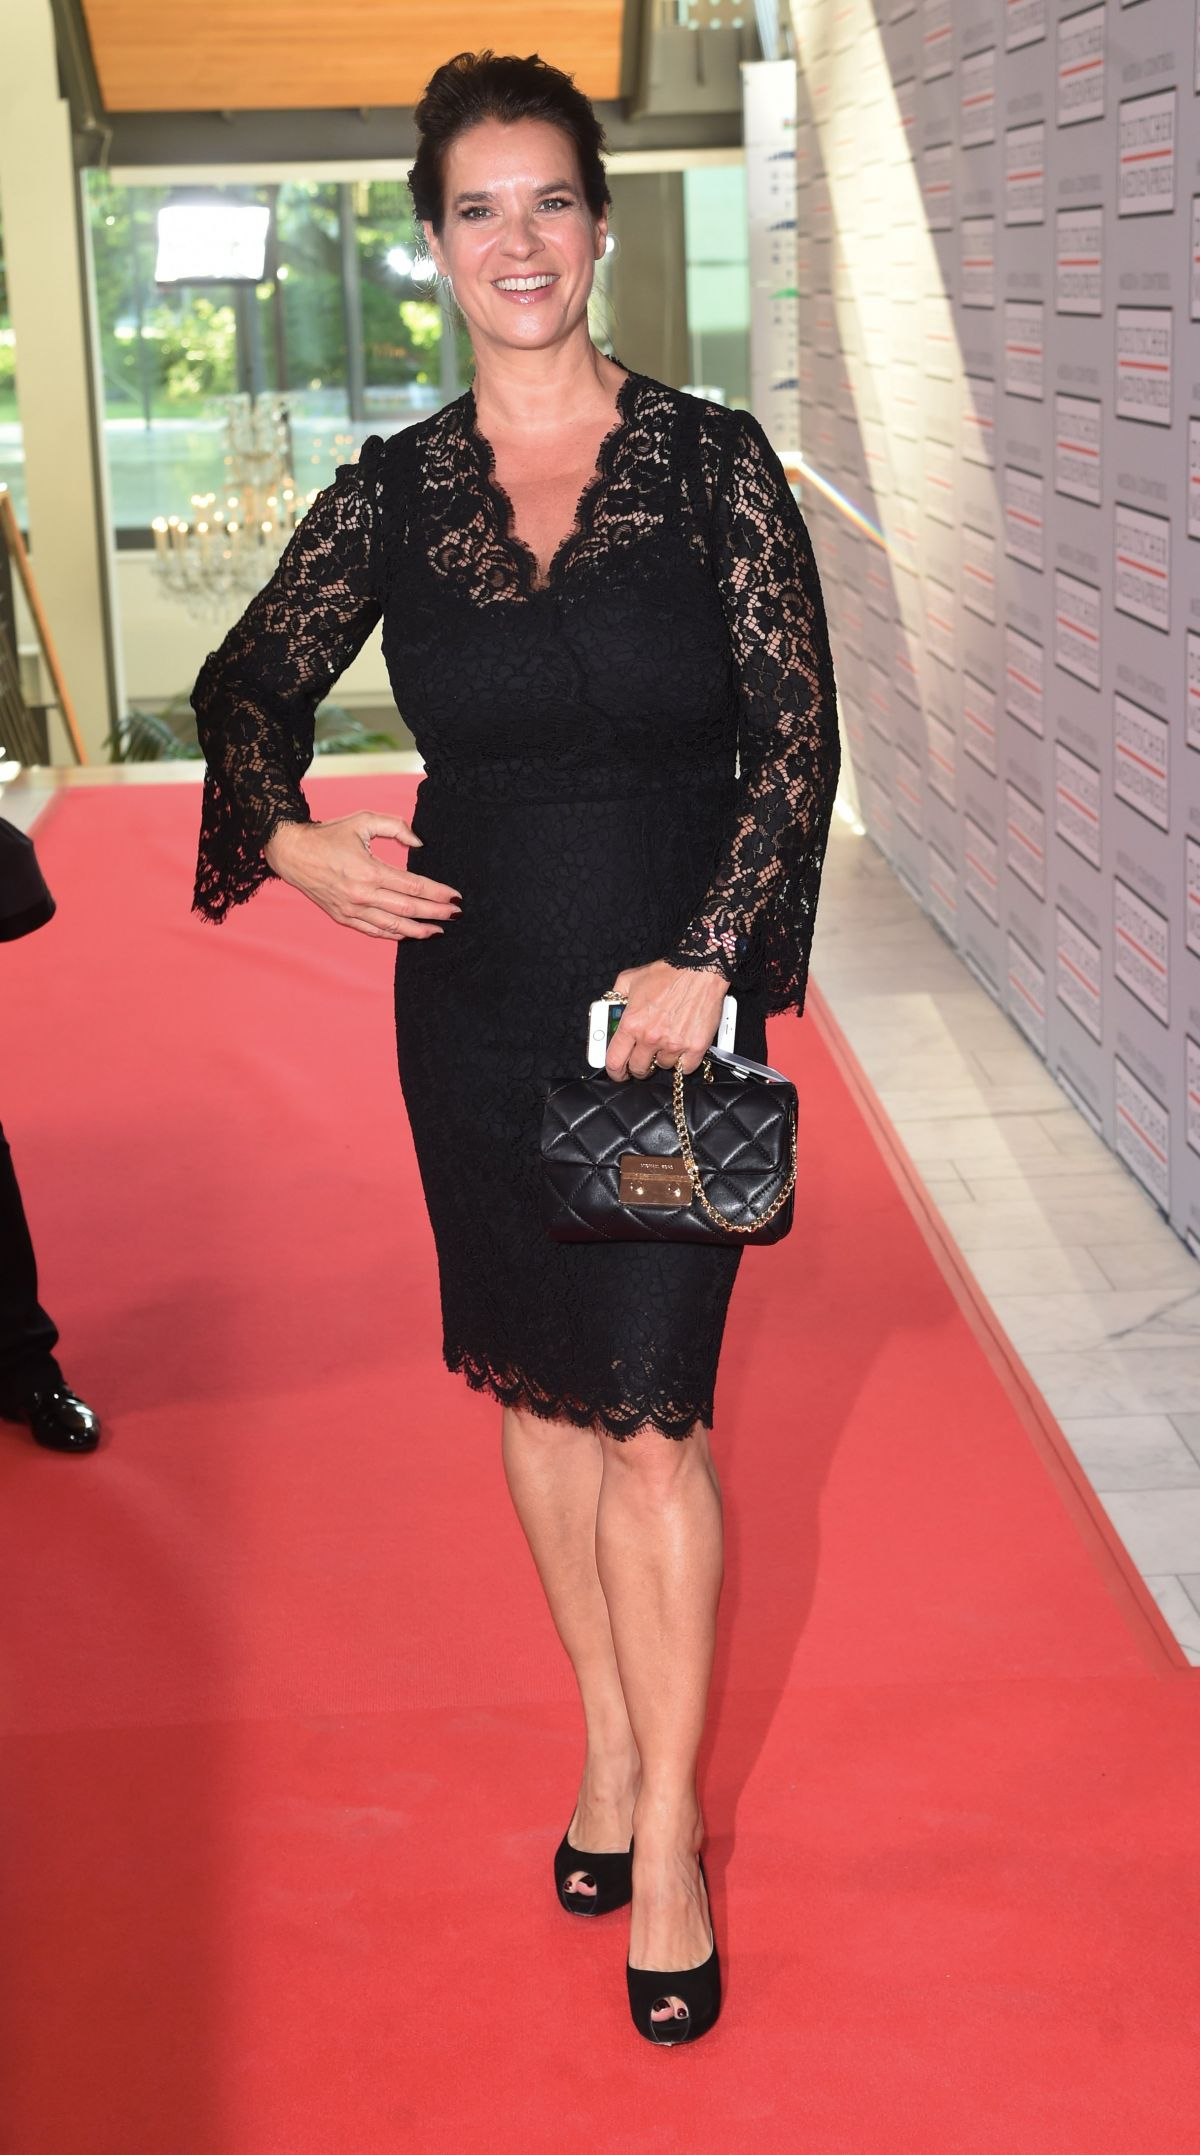 KATARINA WITT at German Media Awards in Baden-baden 05/25/2017